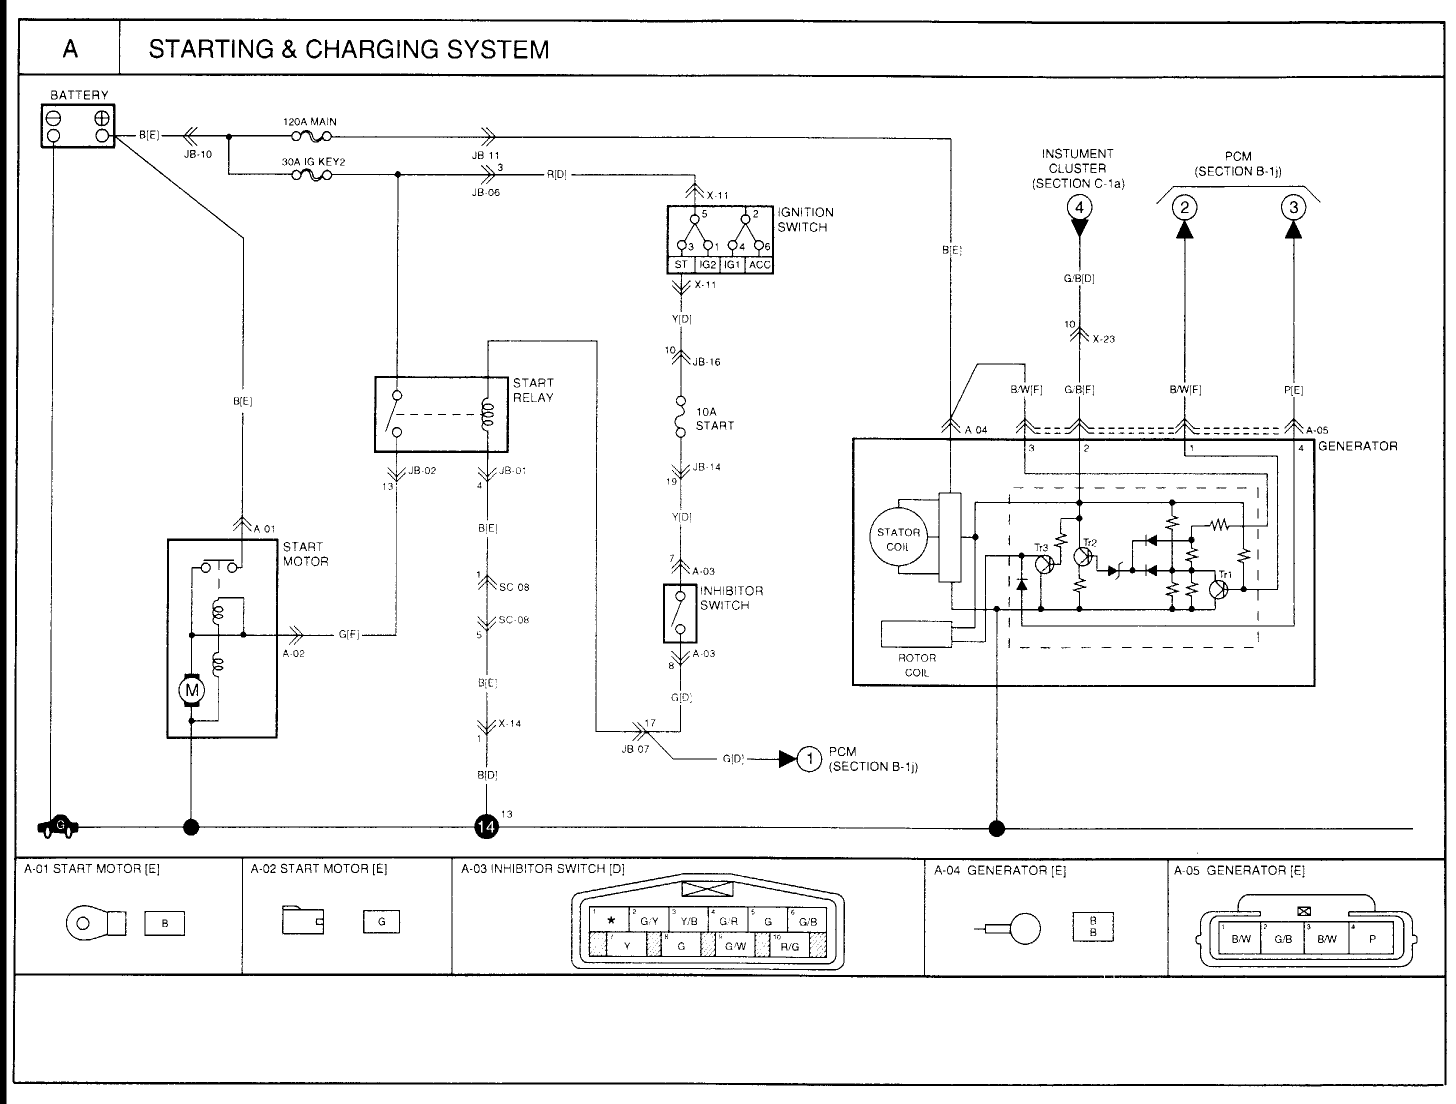 kia rio radio wiring diagram 2007 kia picanto wiring schematic - wiring diagram and schematics kia picanto 2007 wiring diagram